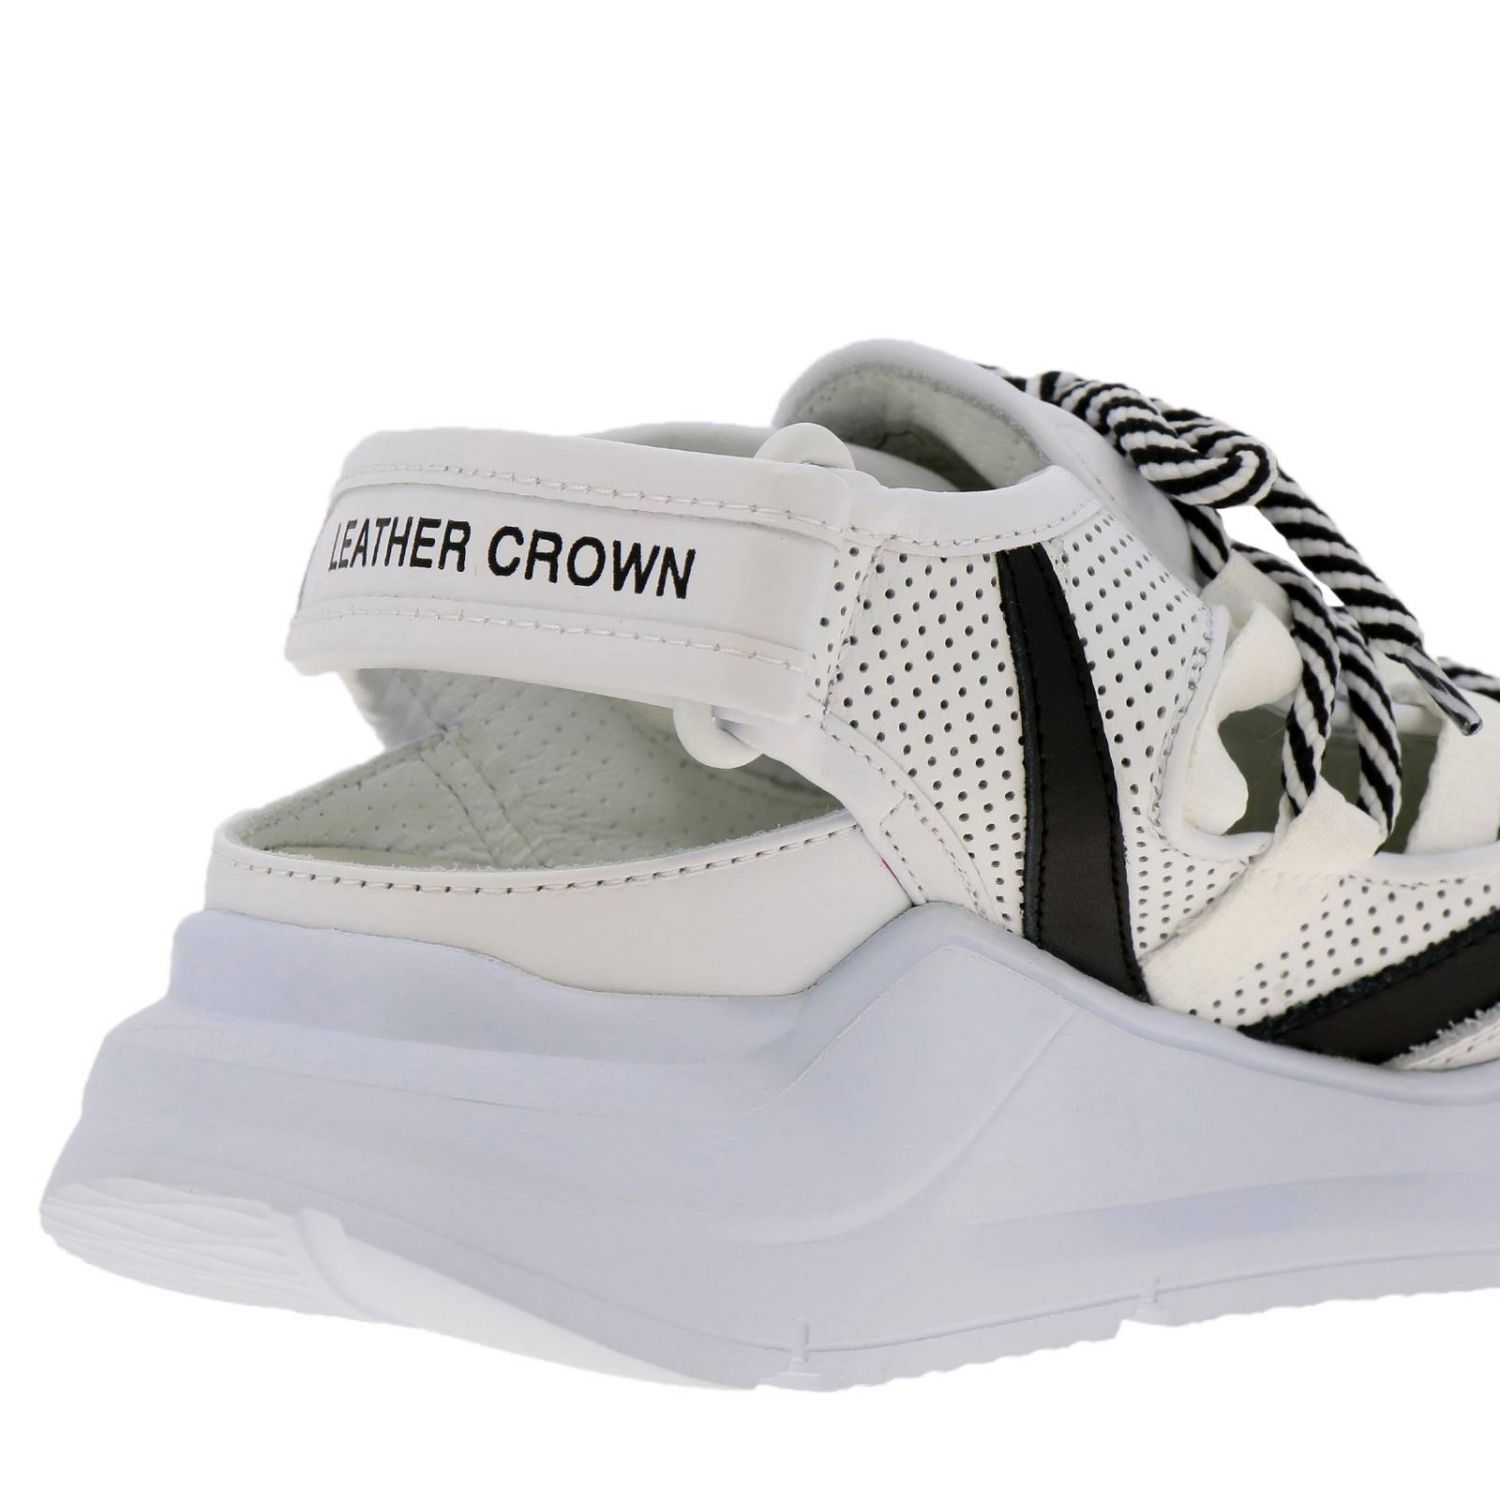 Shoes women Leather Crown white 4